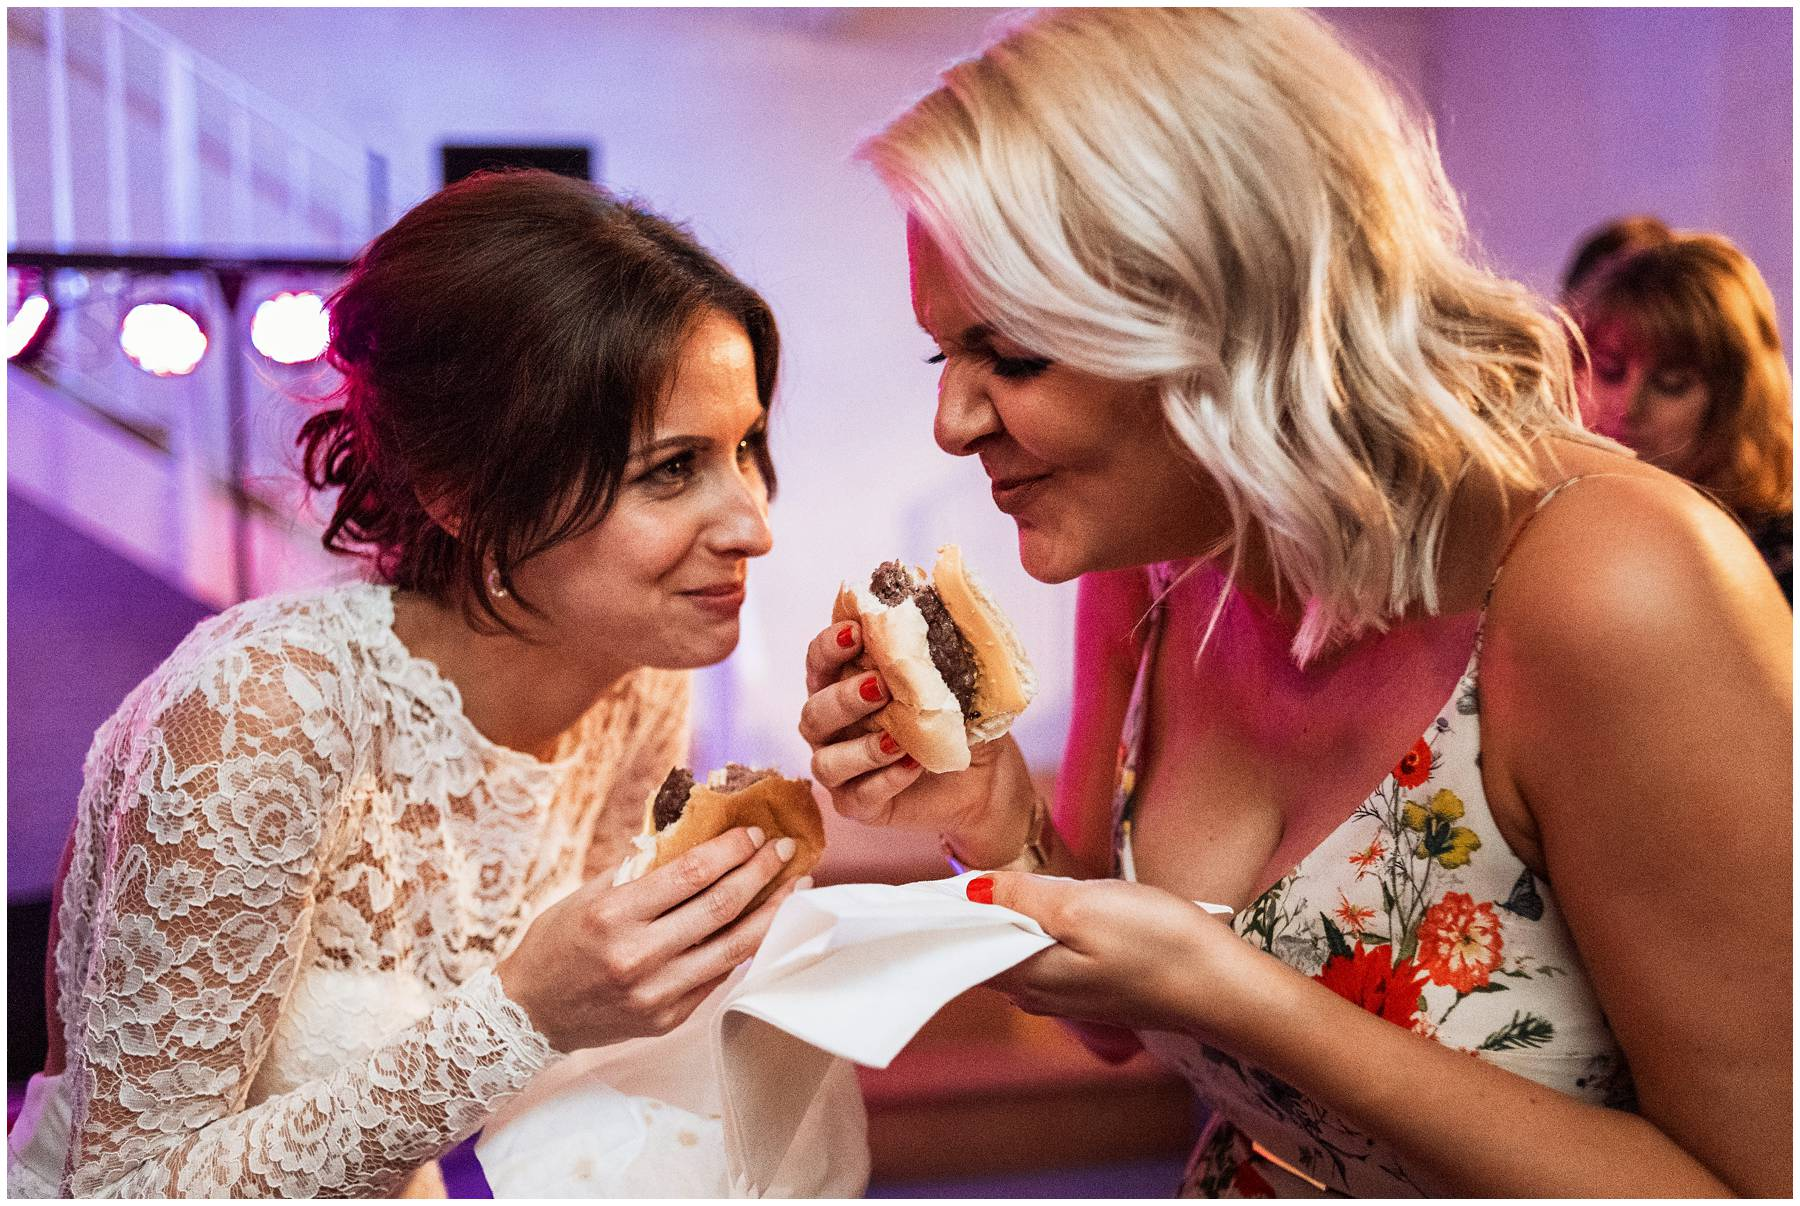 Bride and bridesmaid eating burgers at wedding